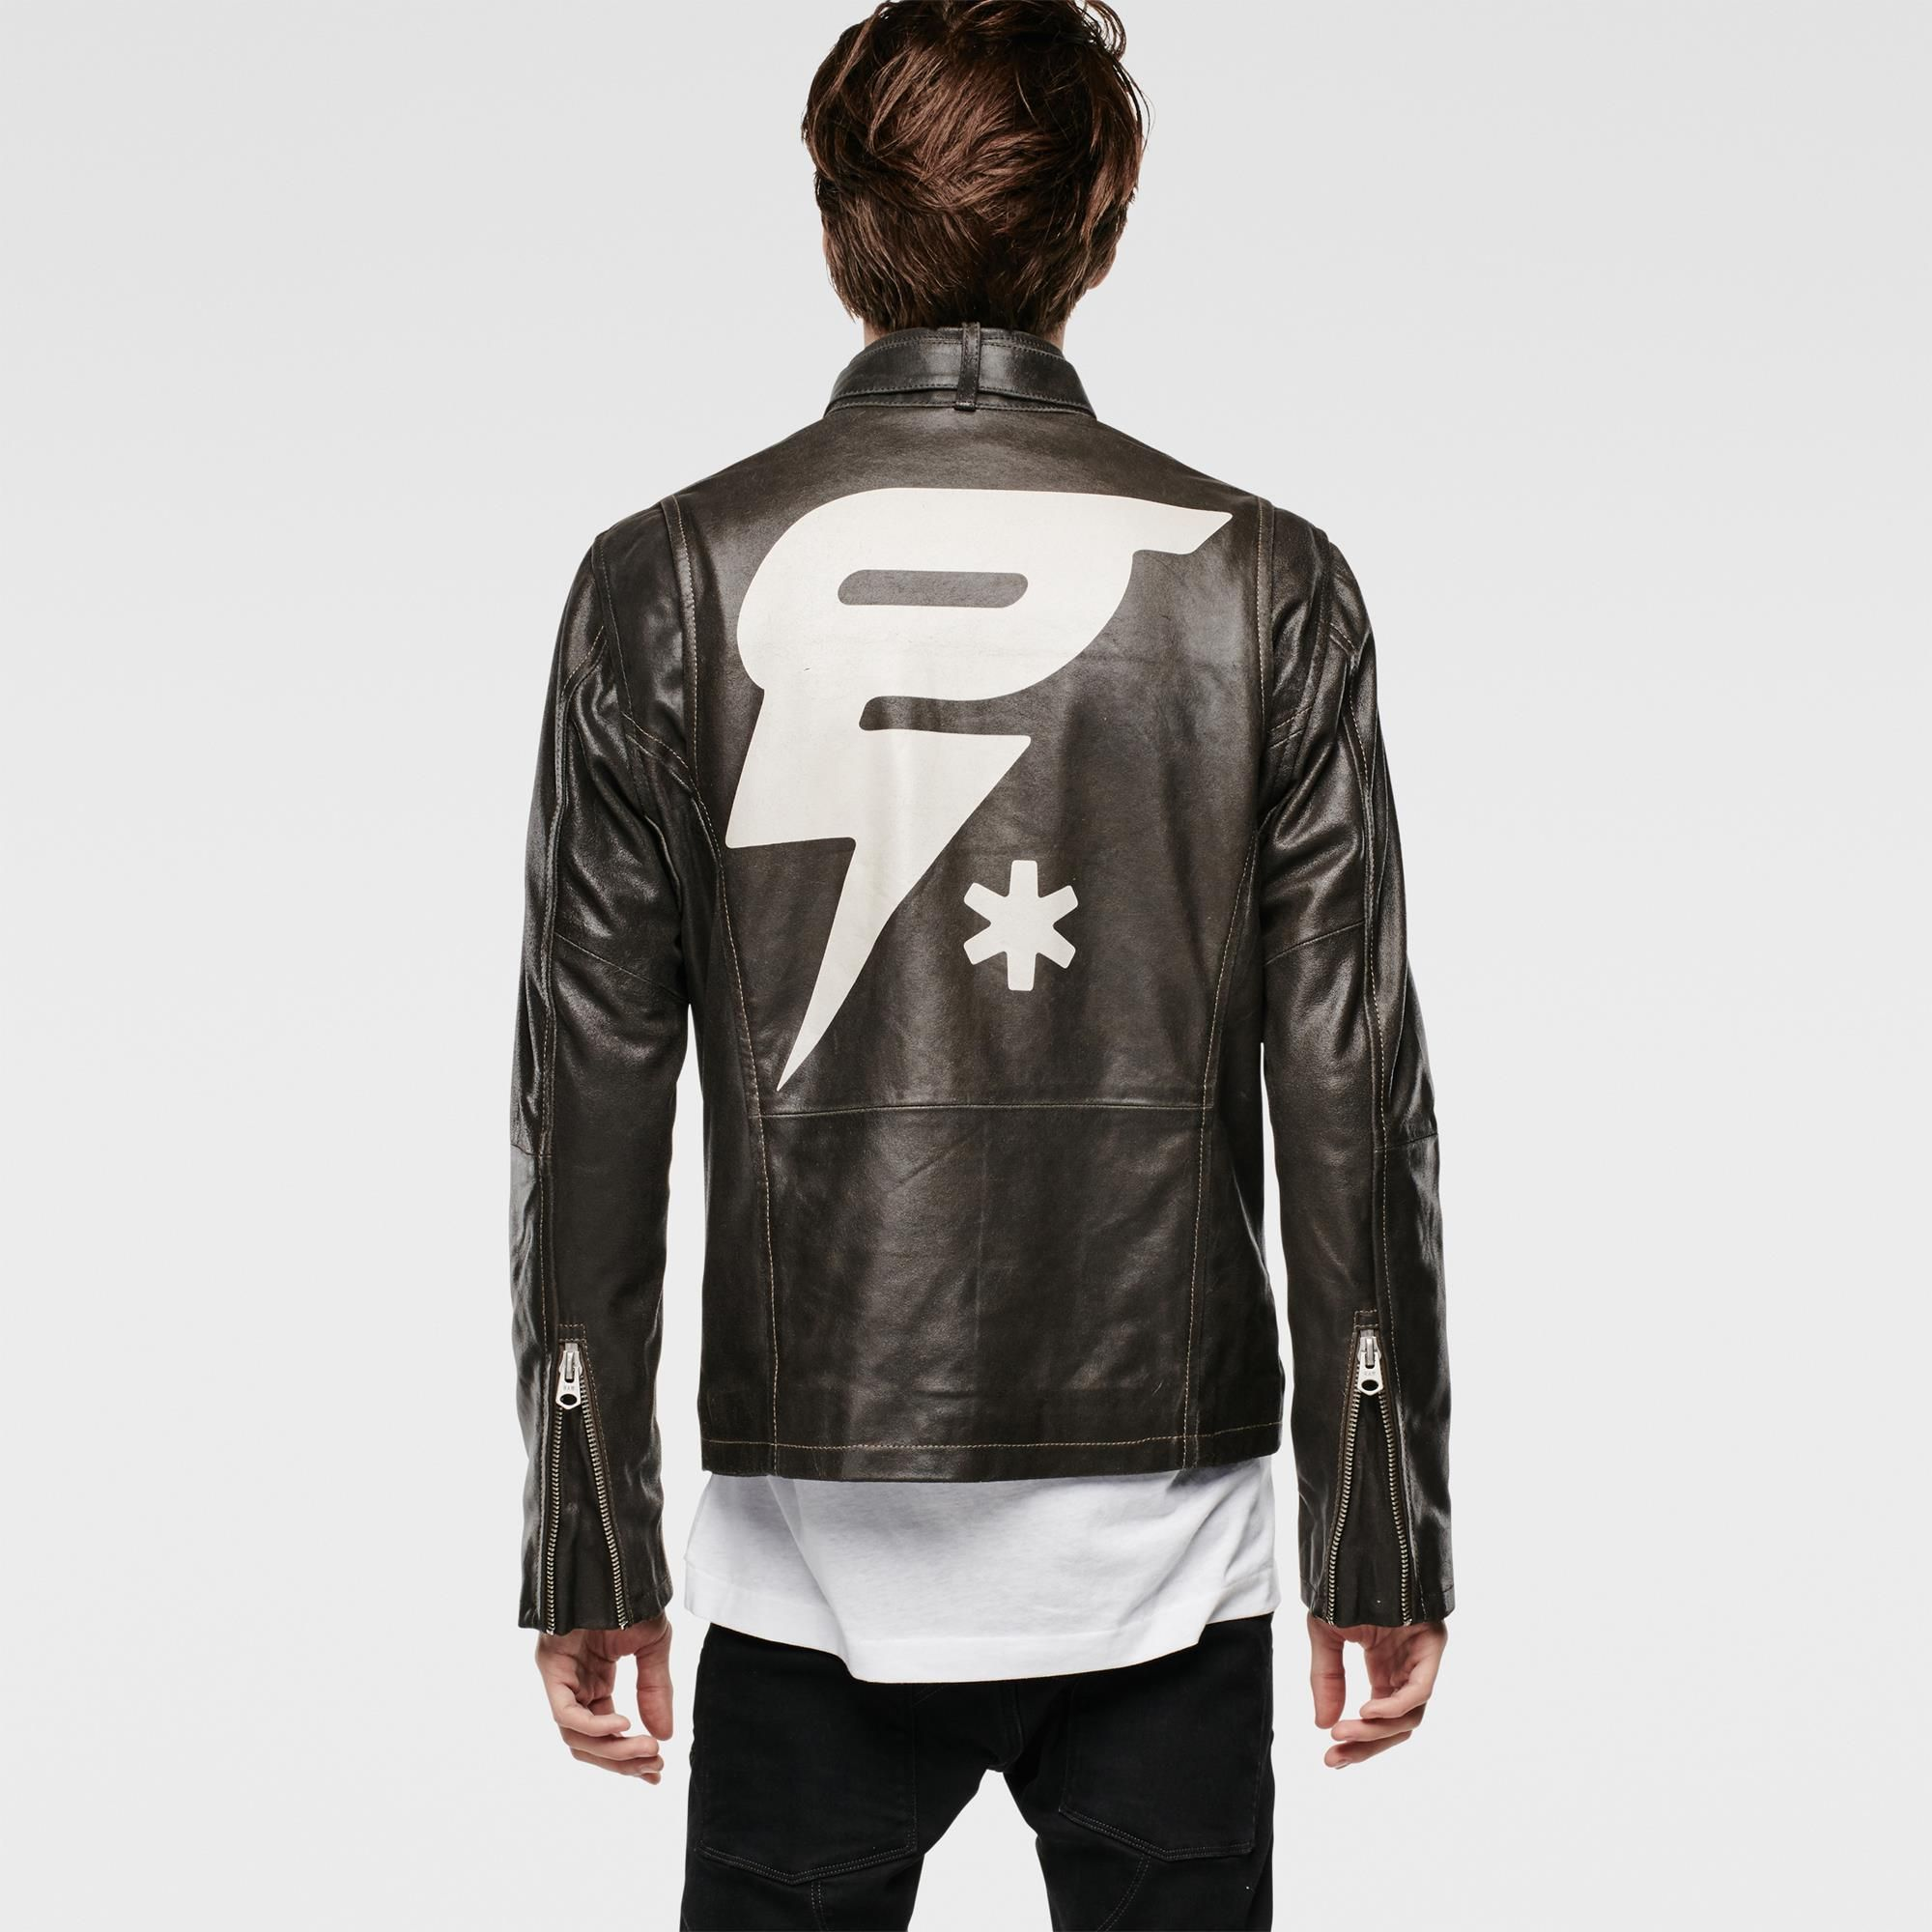 Slim leather jacket with café-racer belted collar and metal hardware. Back features a large painted artwork.